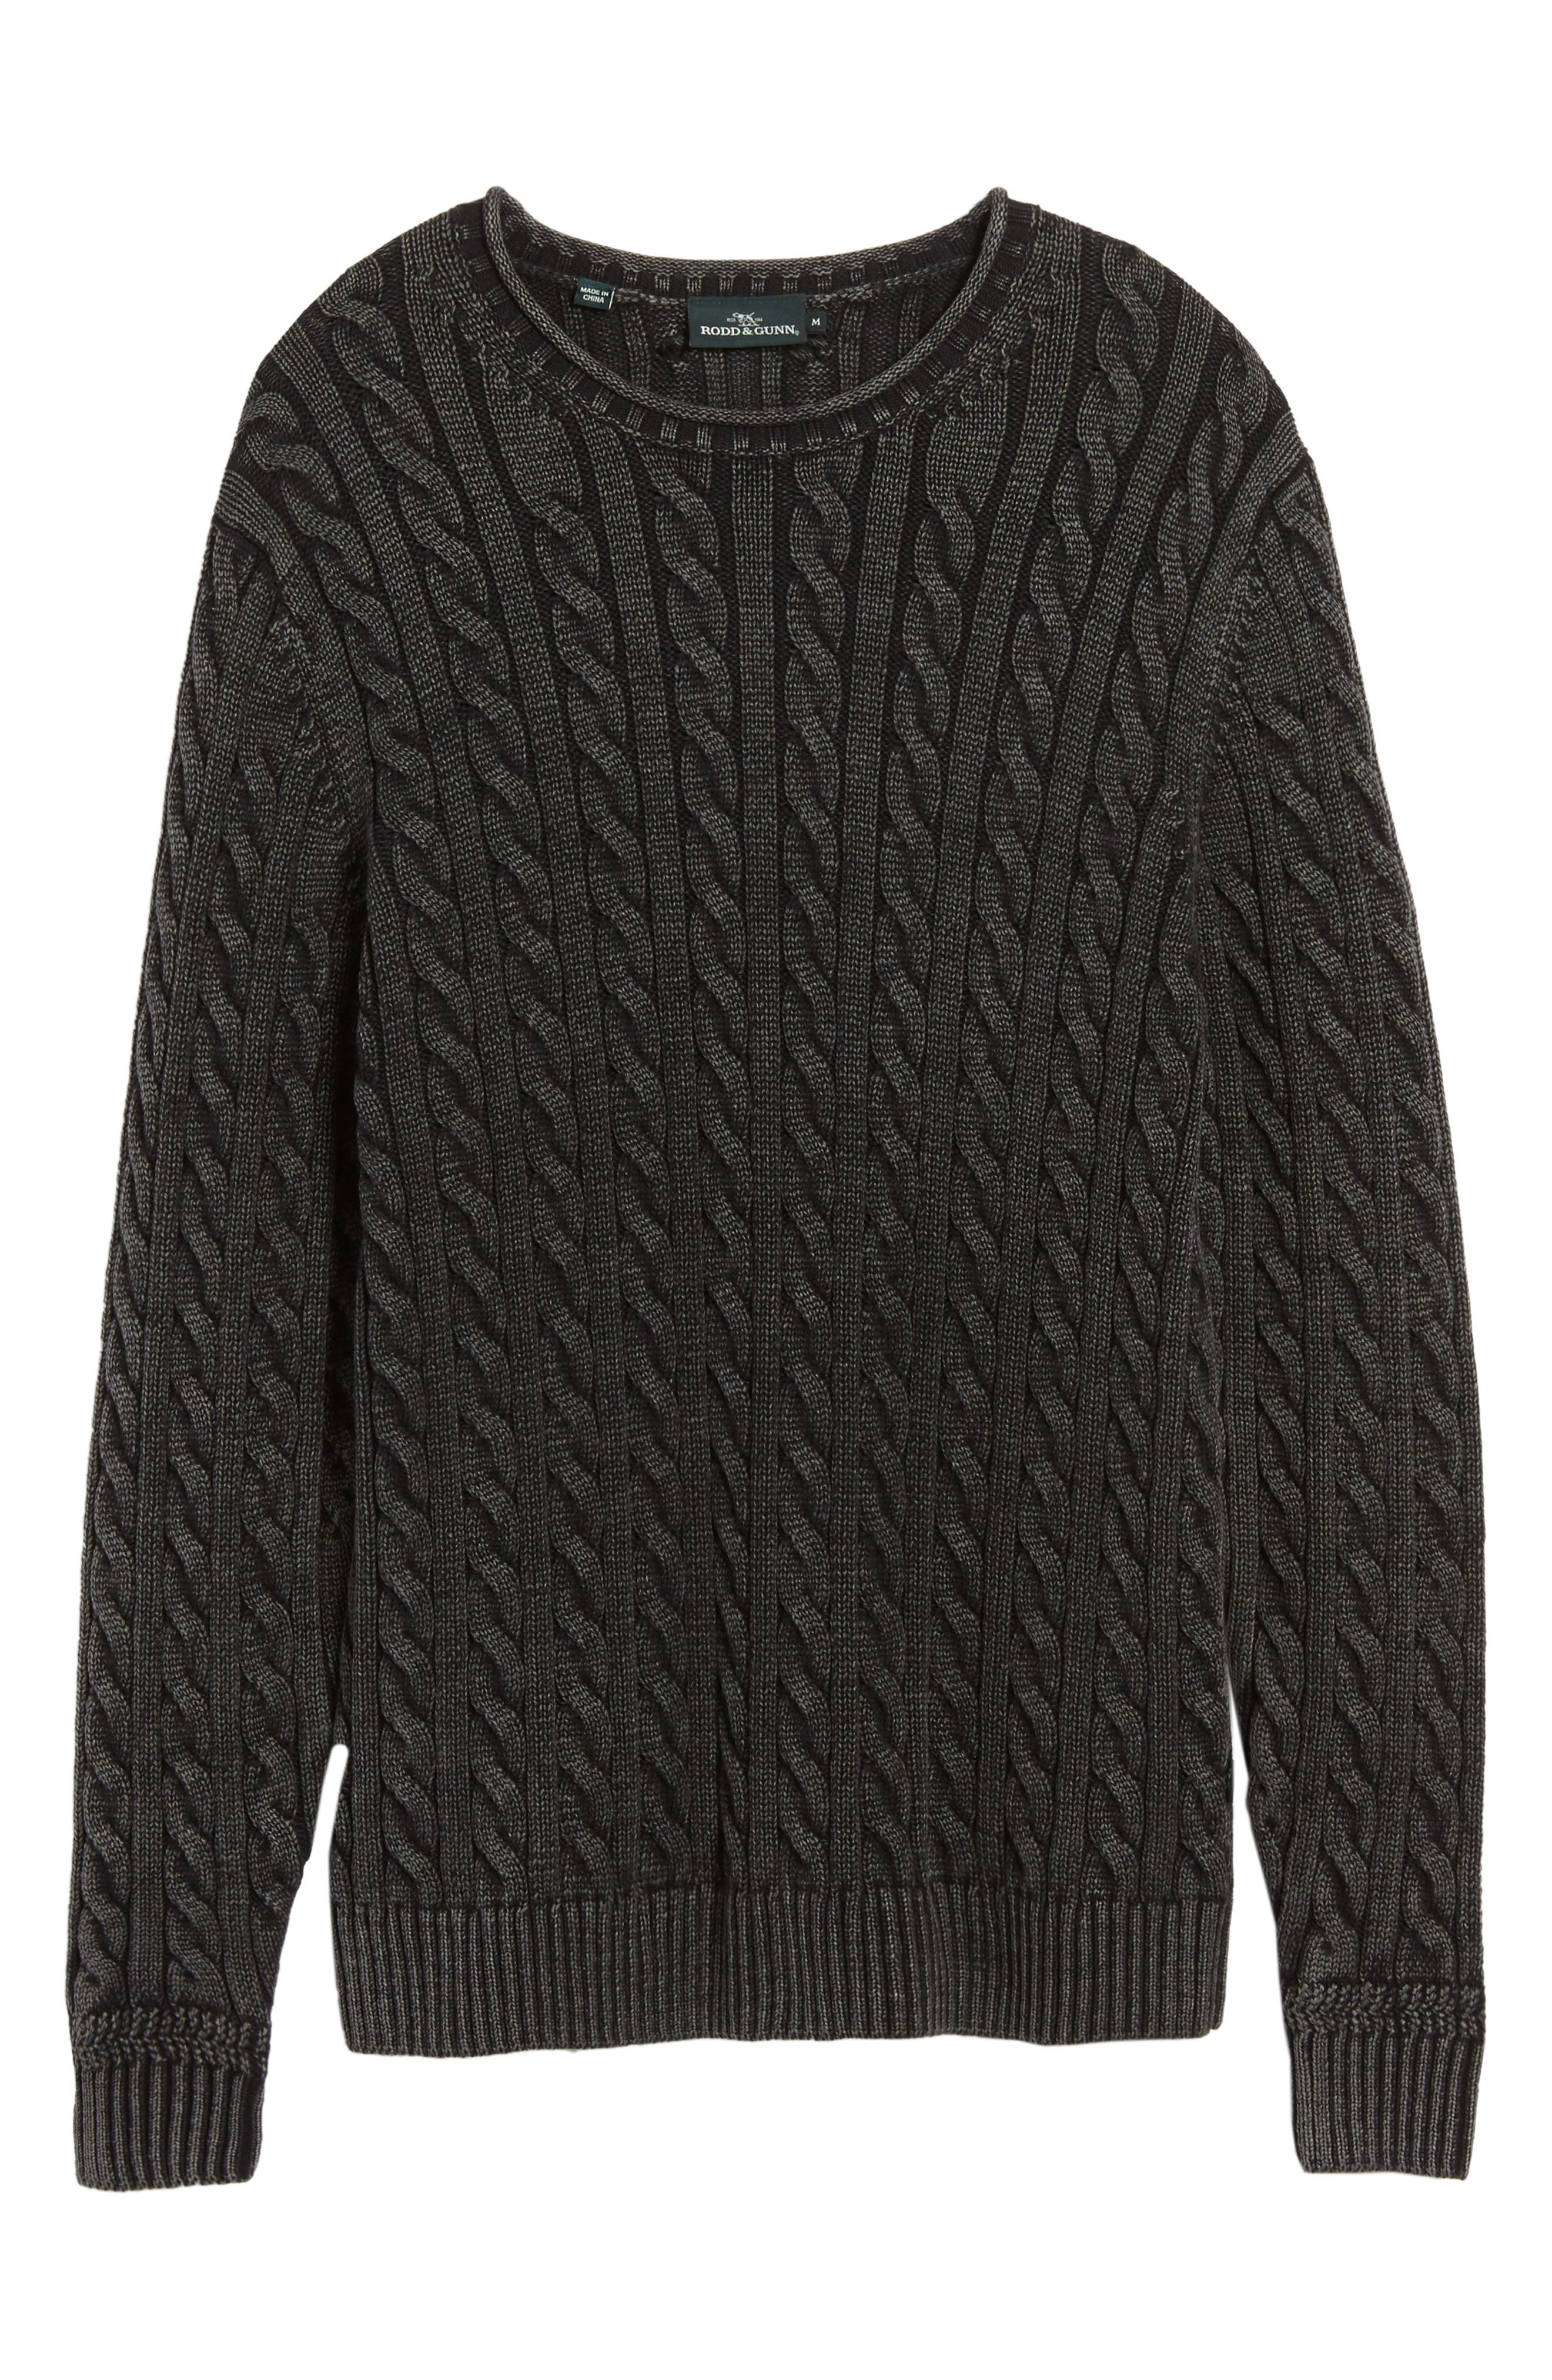 Landray Cable Knit Cotton Sweater,                             Alternate thumbnail 6, color,                             Charcoal